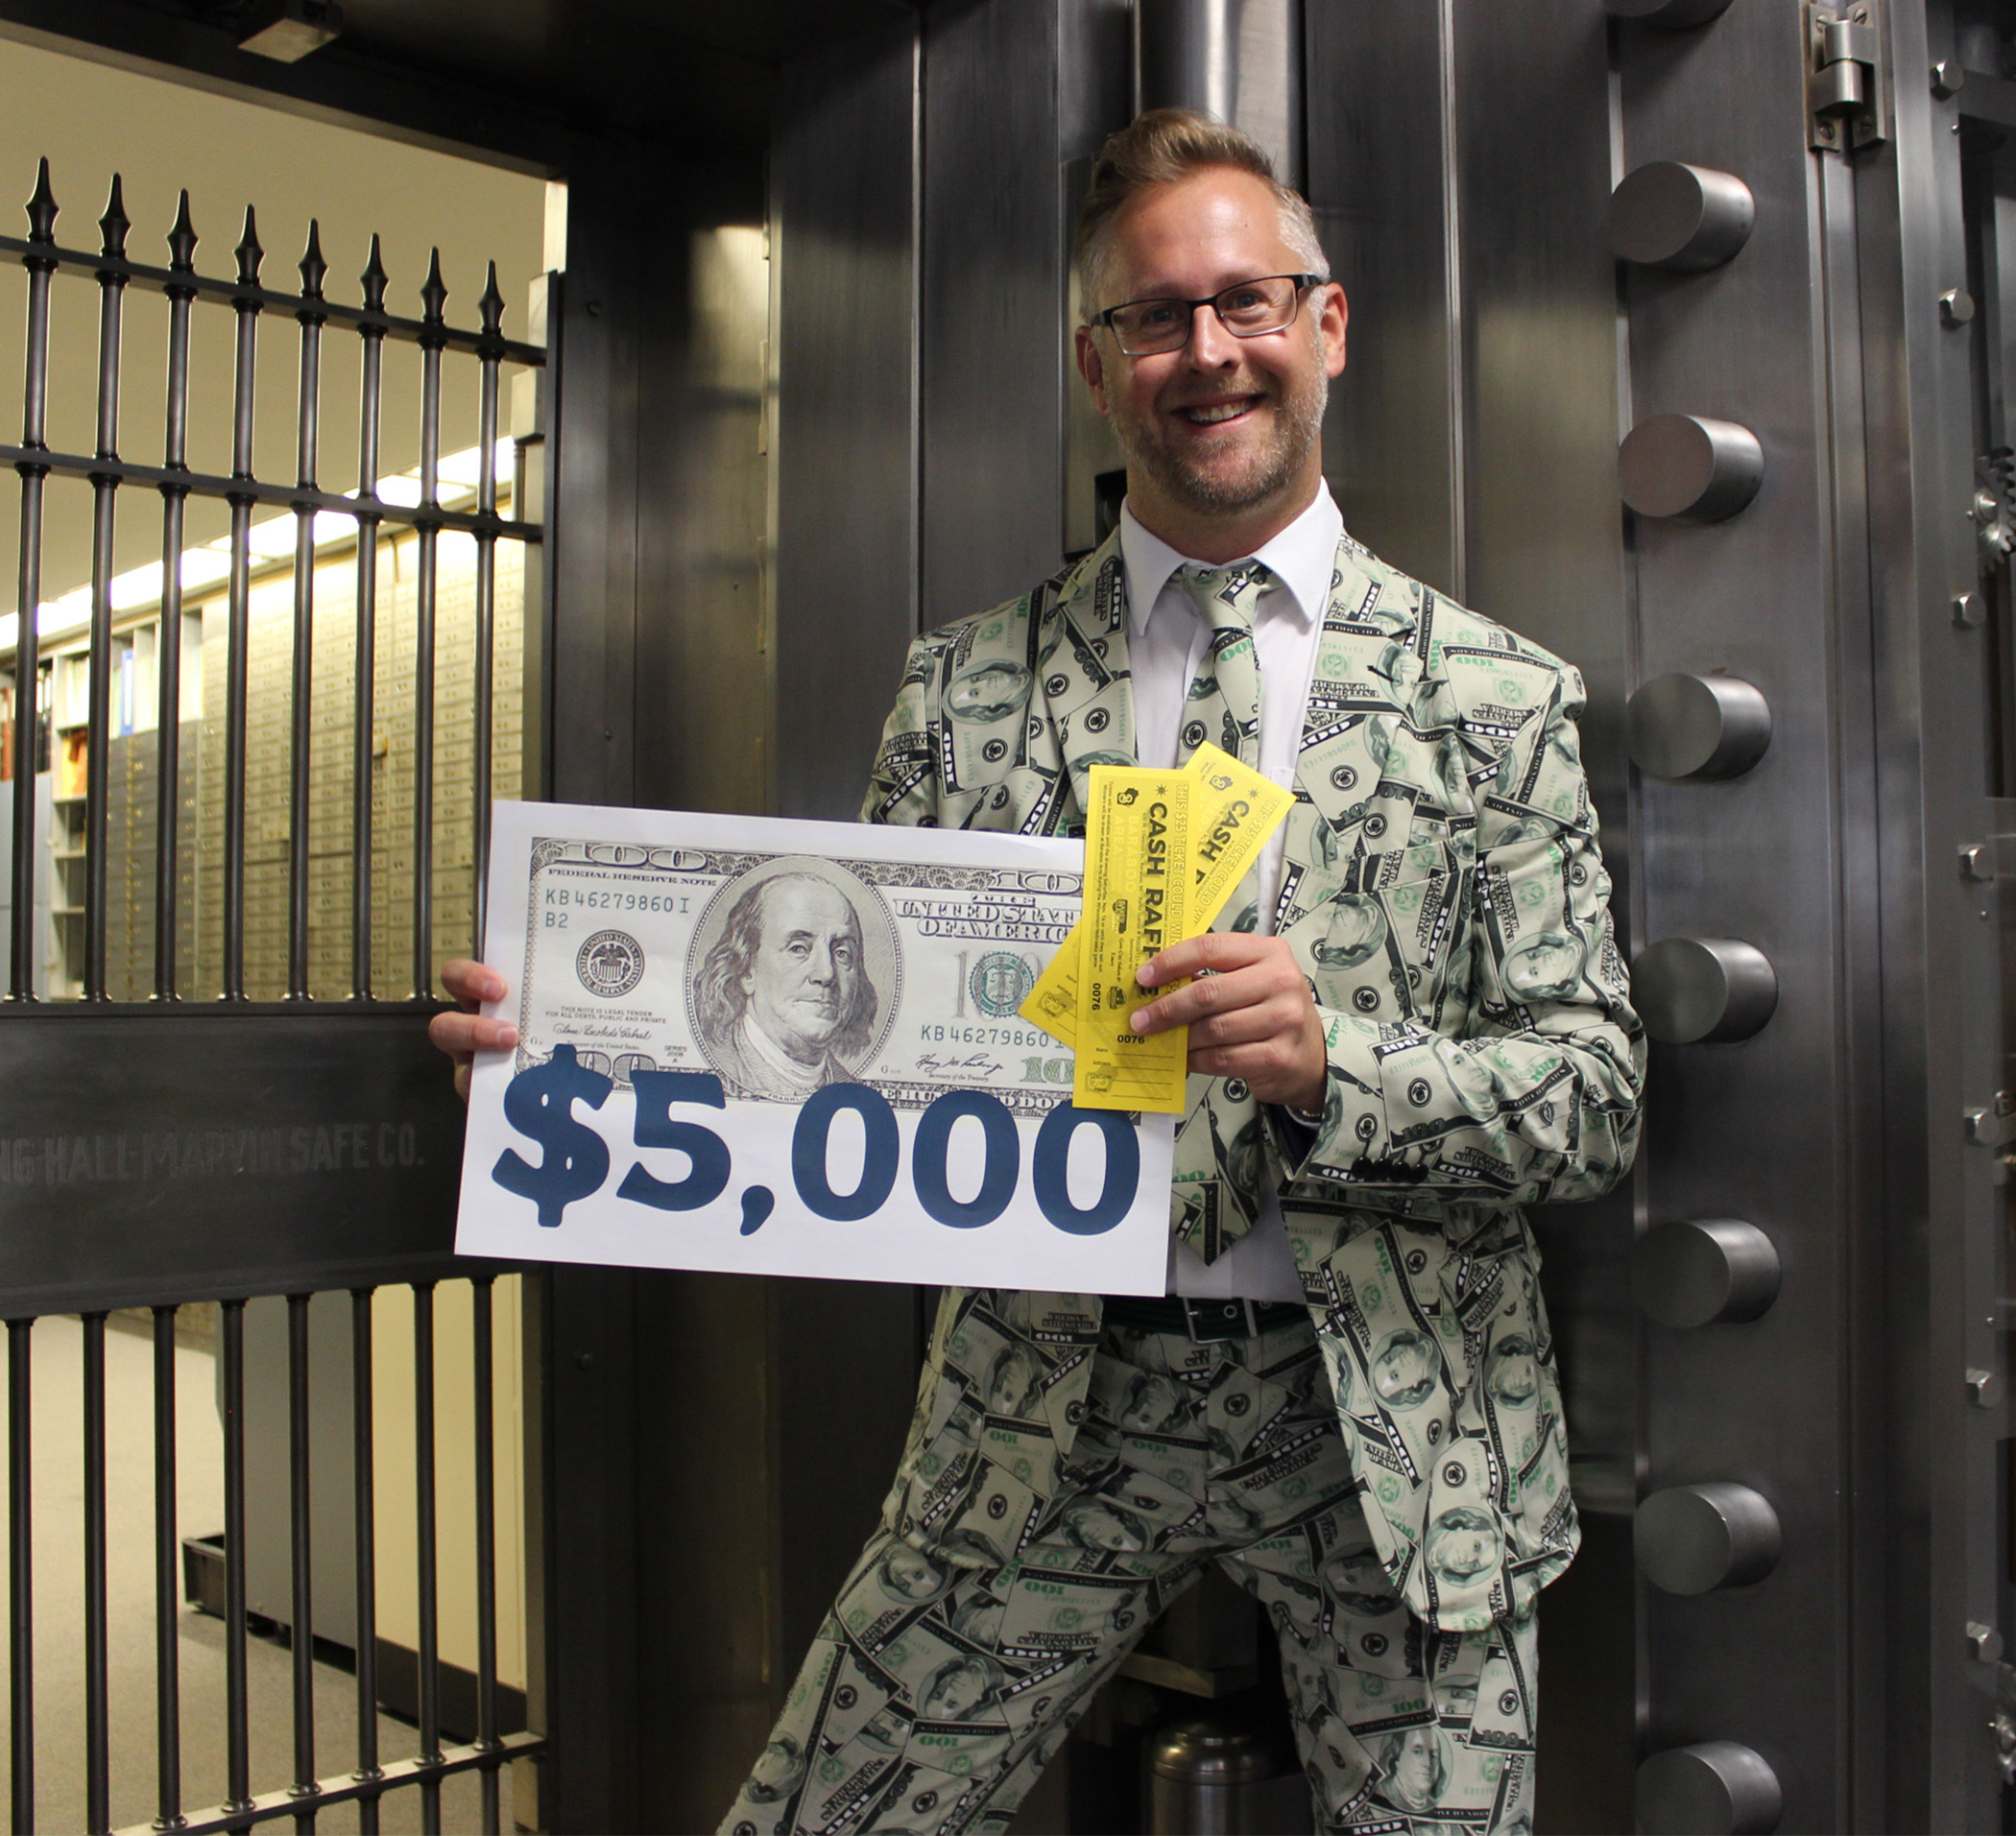 Chamber executive wearing cash suit outside bank vault